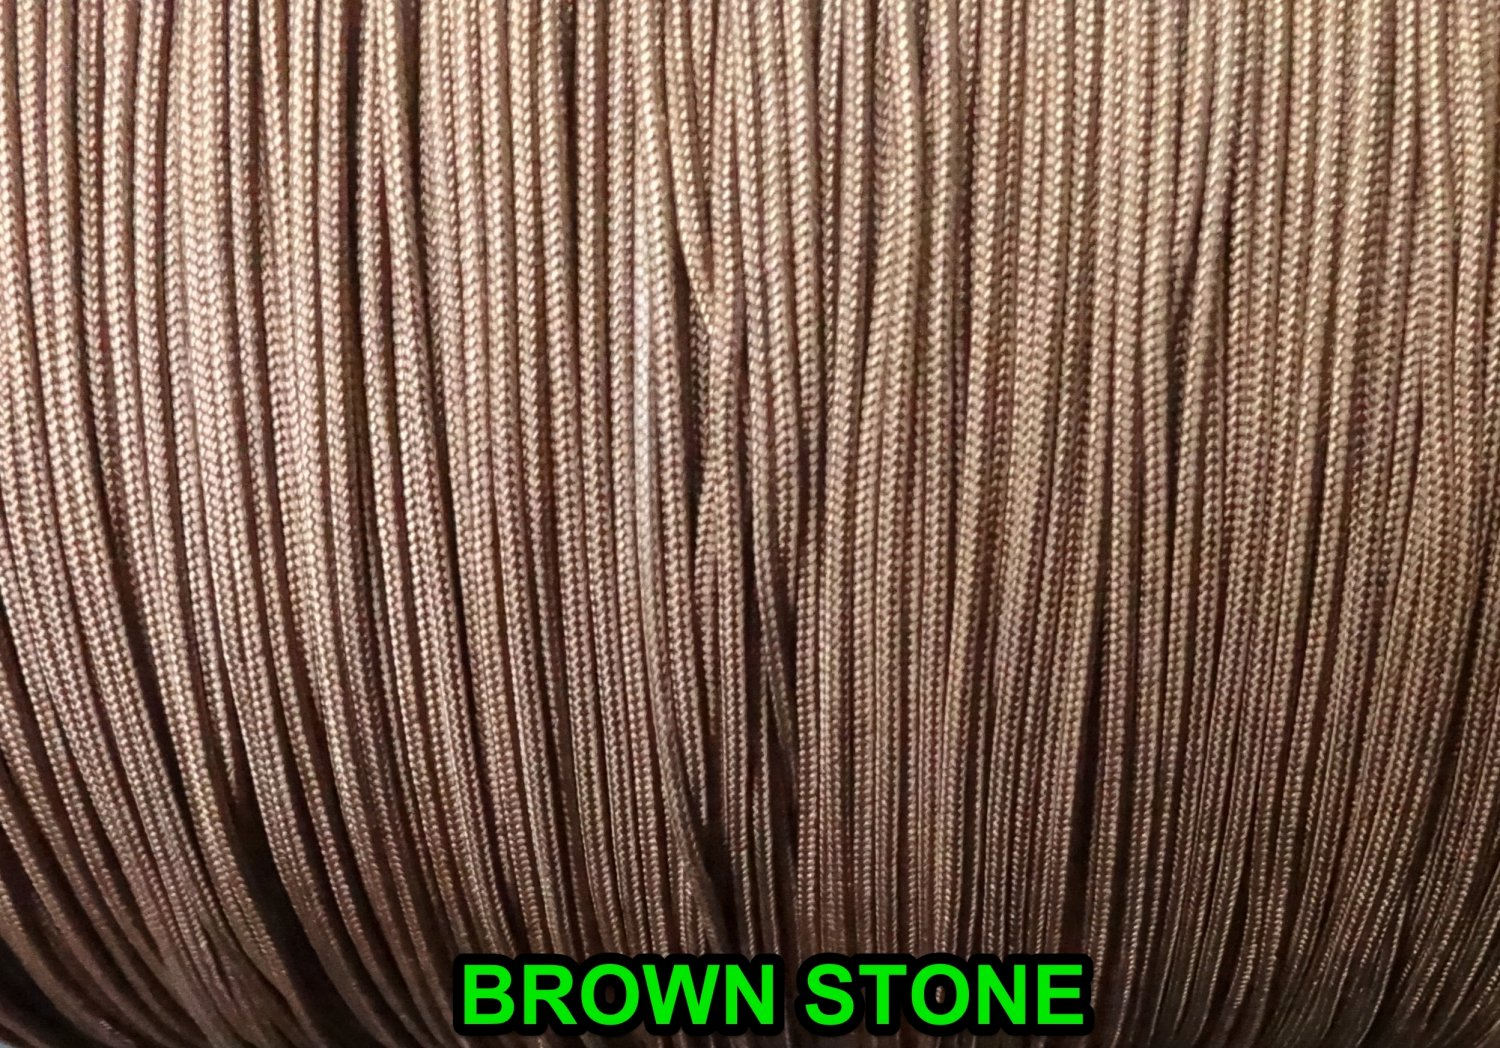 100 FEET 1.6 MM Brownstone  LIFT CORD for Blinds , Shades, Crafts,and More!.